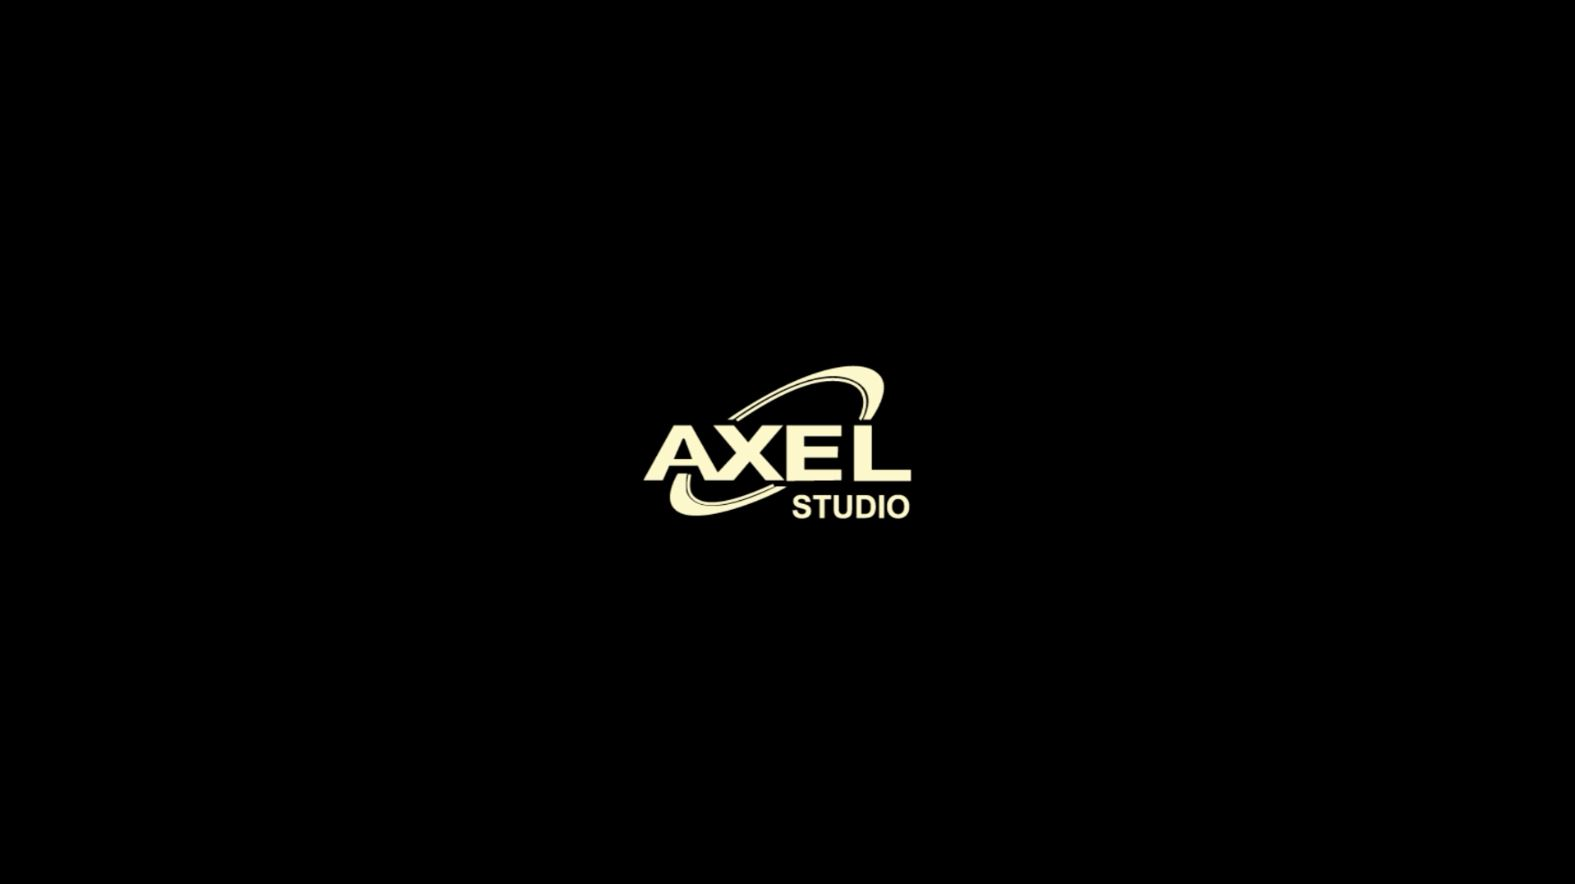 Perancangan Video Prewedding Clip Sebagai Media Promosi Axel